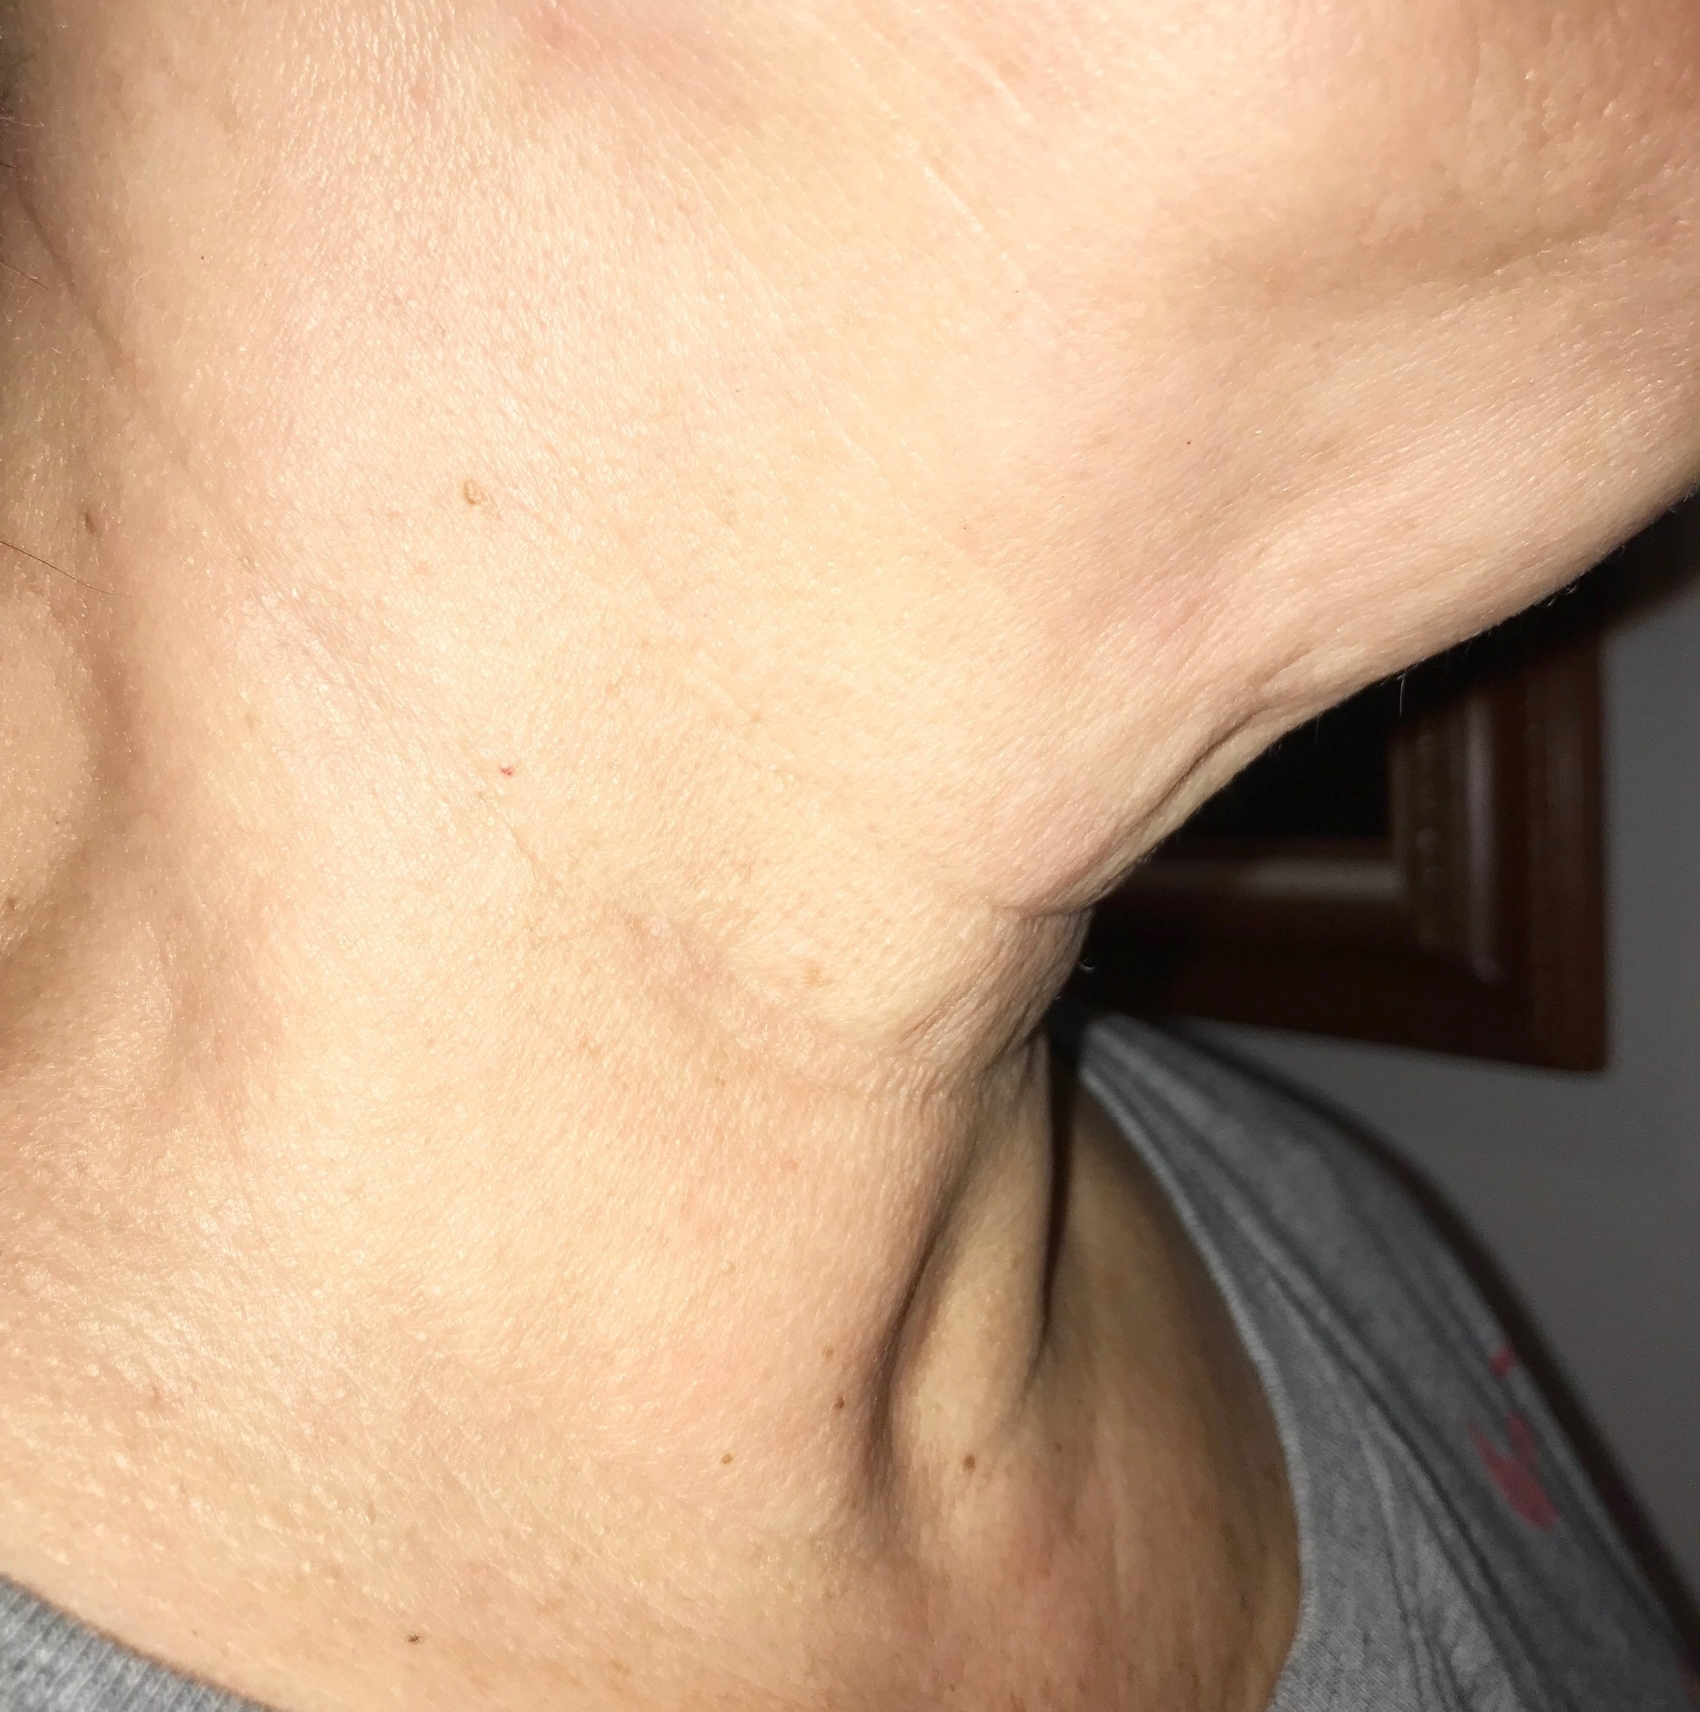 """Judy B: Week 4 - """" I have to say, It has been a wonderful experience using the neck mask and serum to condition and care for that part, otherwise I don't know what I would do to keep the lines at bay and look younger with a tighter, brighter neck- it is the first thing I pamper myself with after flights!"""""""